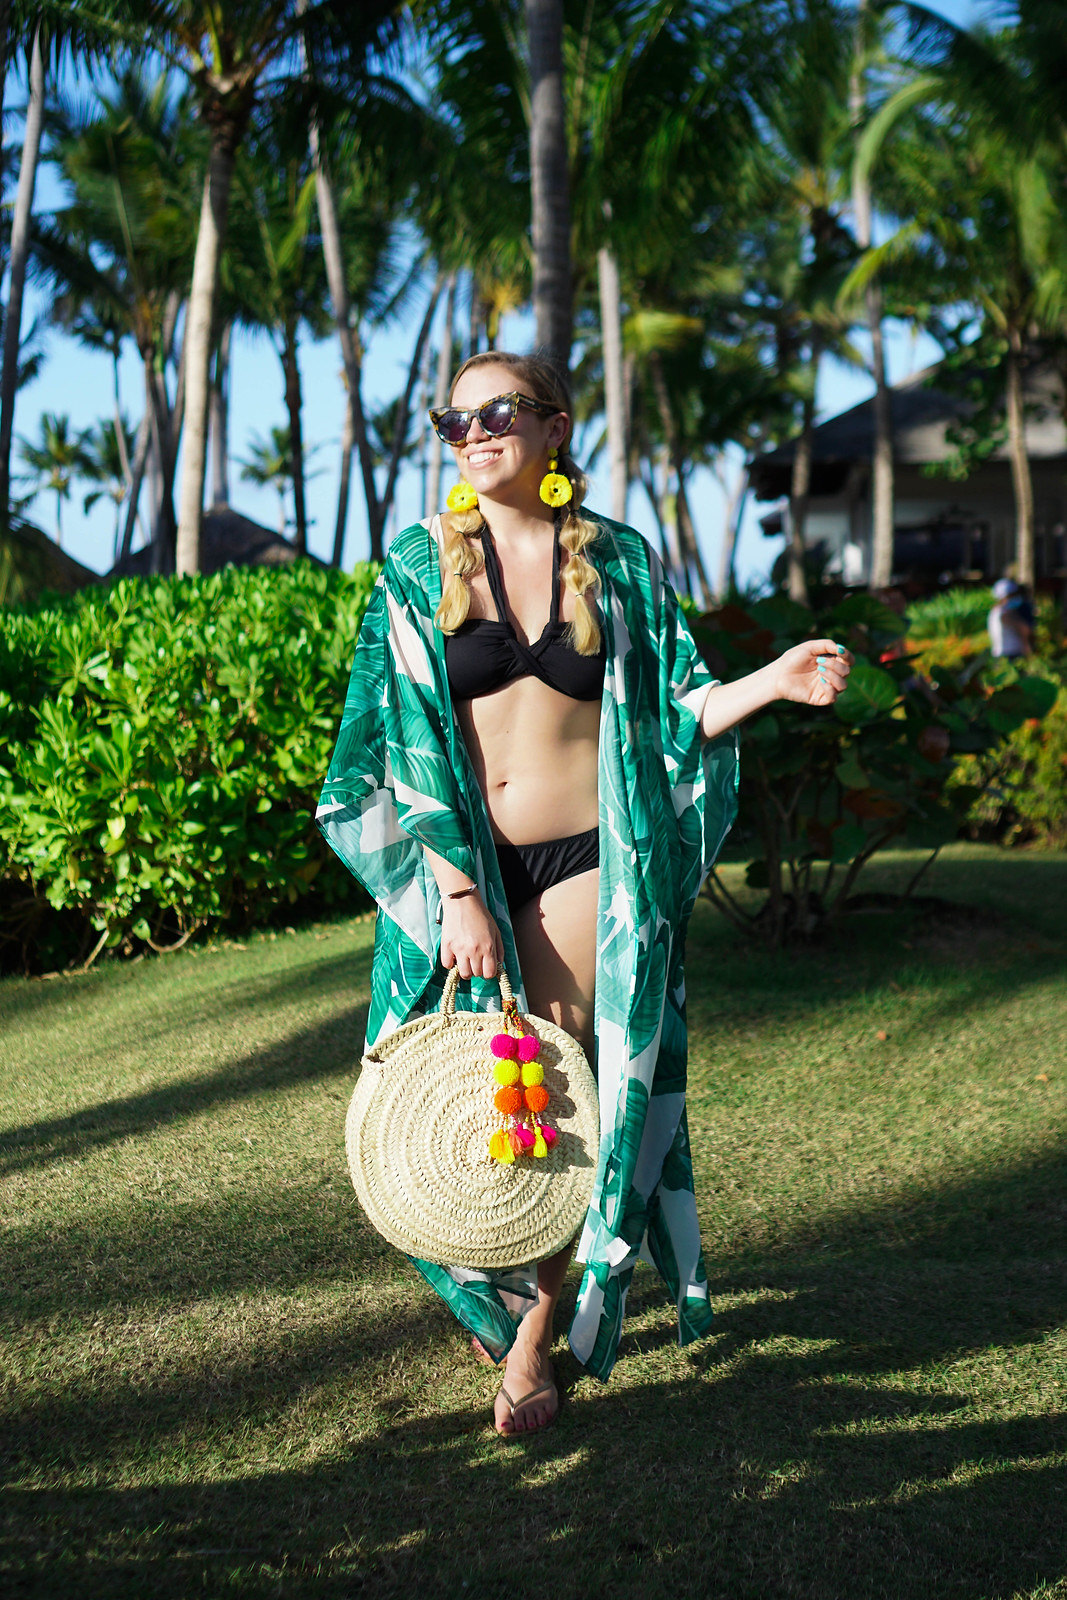 Punta Cana Vacation All Inclusive Outfit | Bubble Pig Tails | Green Palm Print Kimono Swimsuit Coverup | Black Bikini